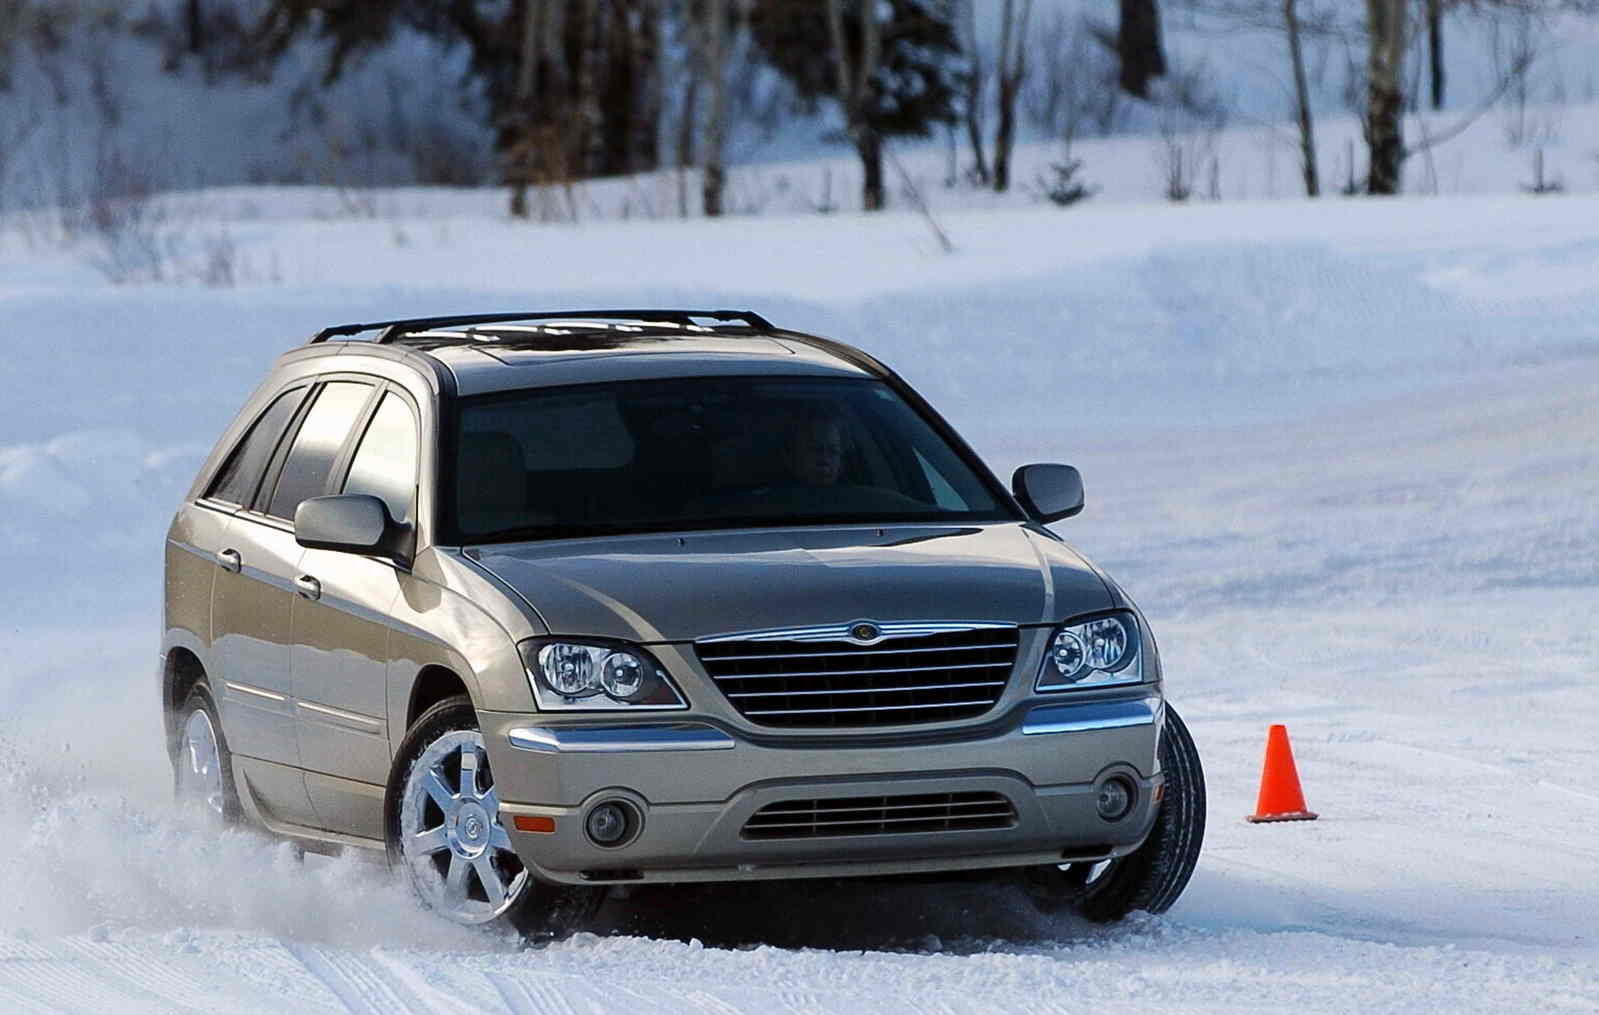 2006 chrysler pacifica picture 45474 car review top speed. Cars Review. Best American Auto & Cars Review